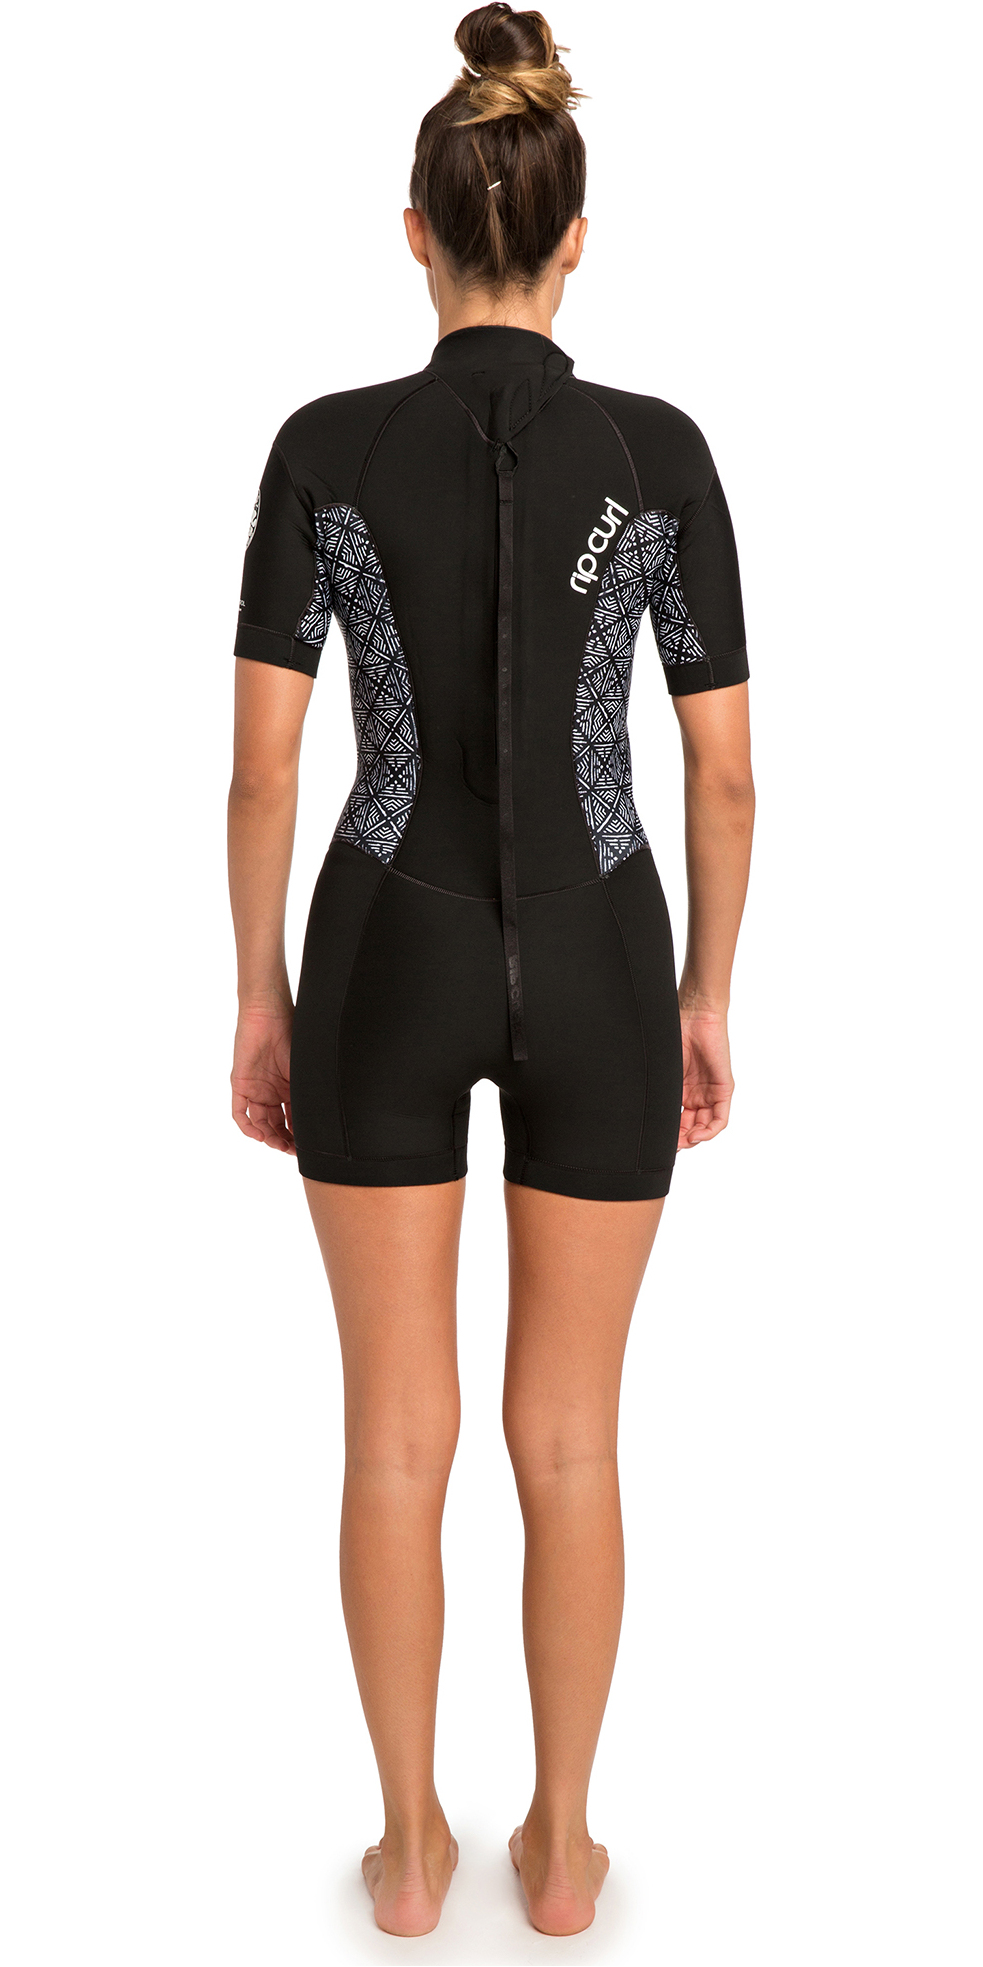 2019 Rip Curl Womens Dawn Patrol 2mm Back Zip Shorty Wetsuit Black WSP8FW